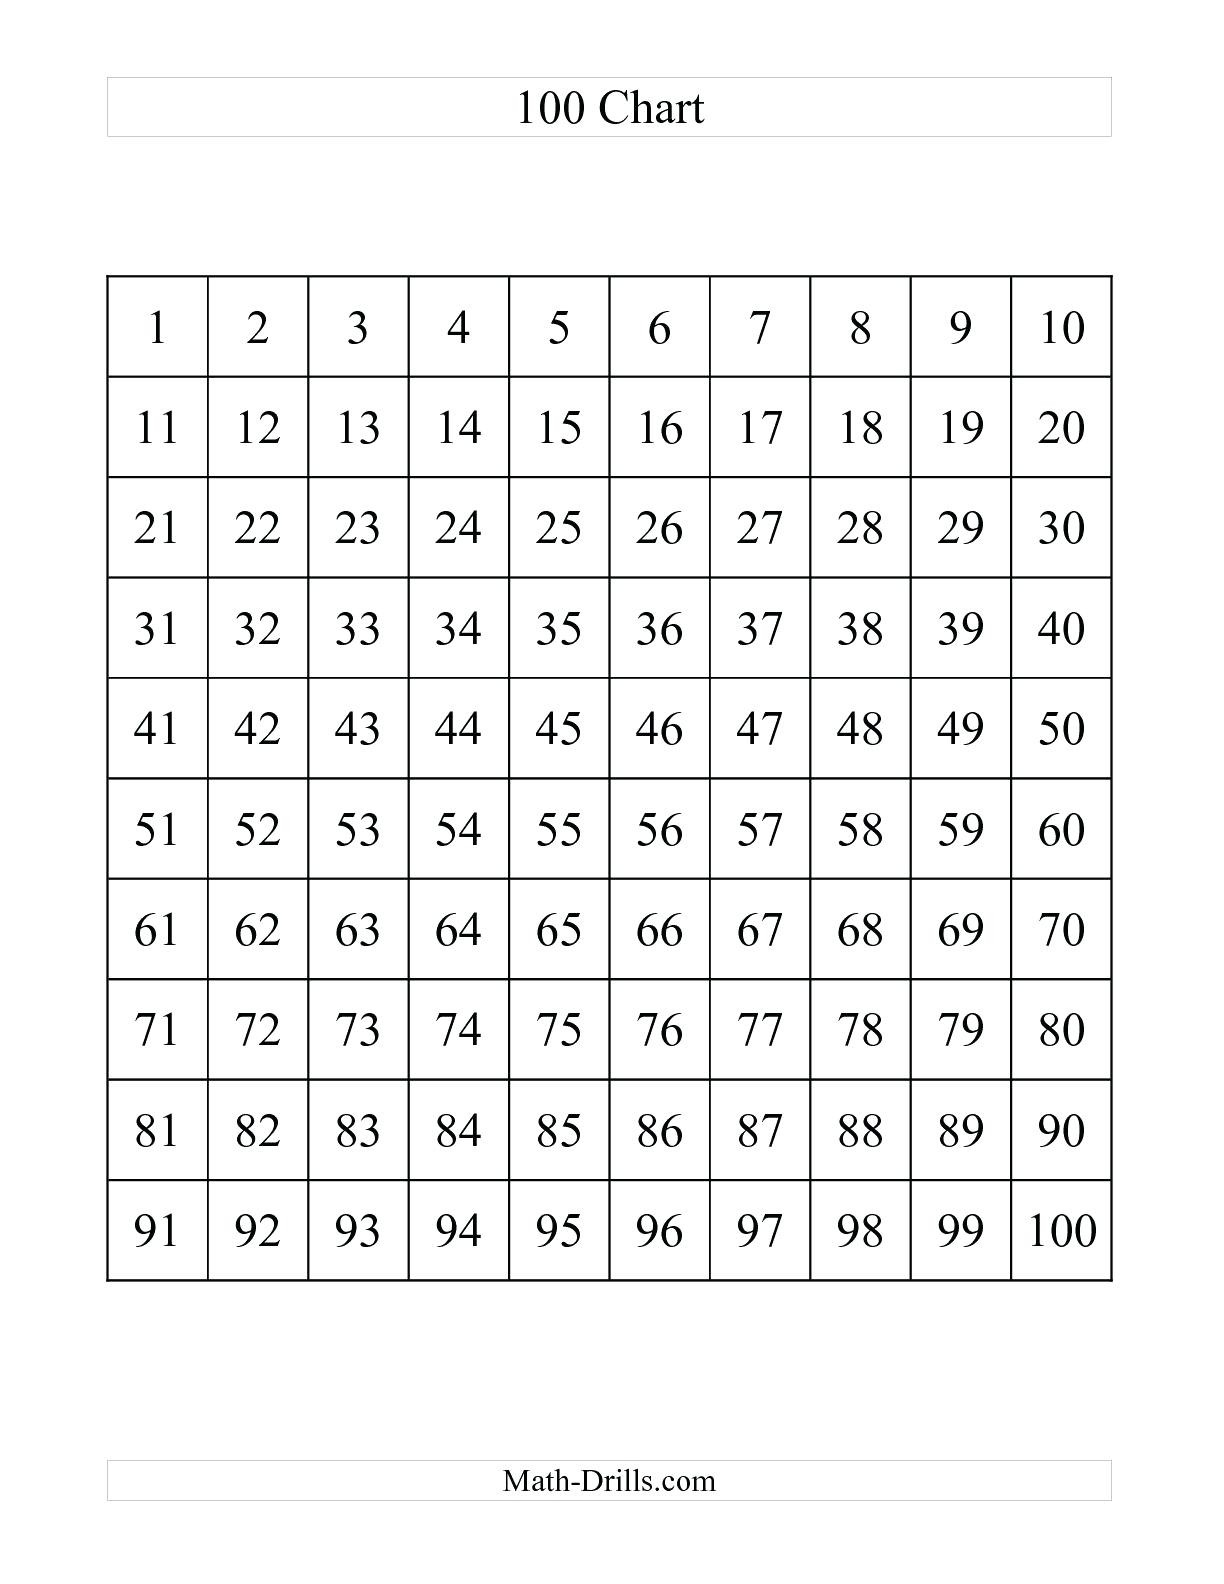 Blank 100 Chart To 120 | Wiring Library - Free Printable Hundreds Chart To 120